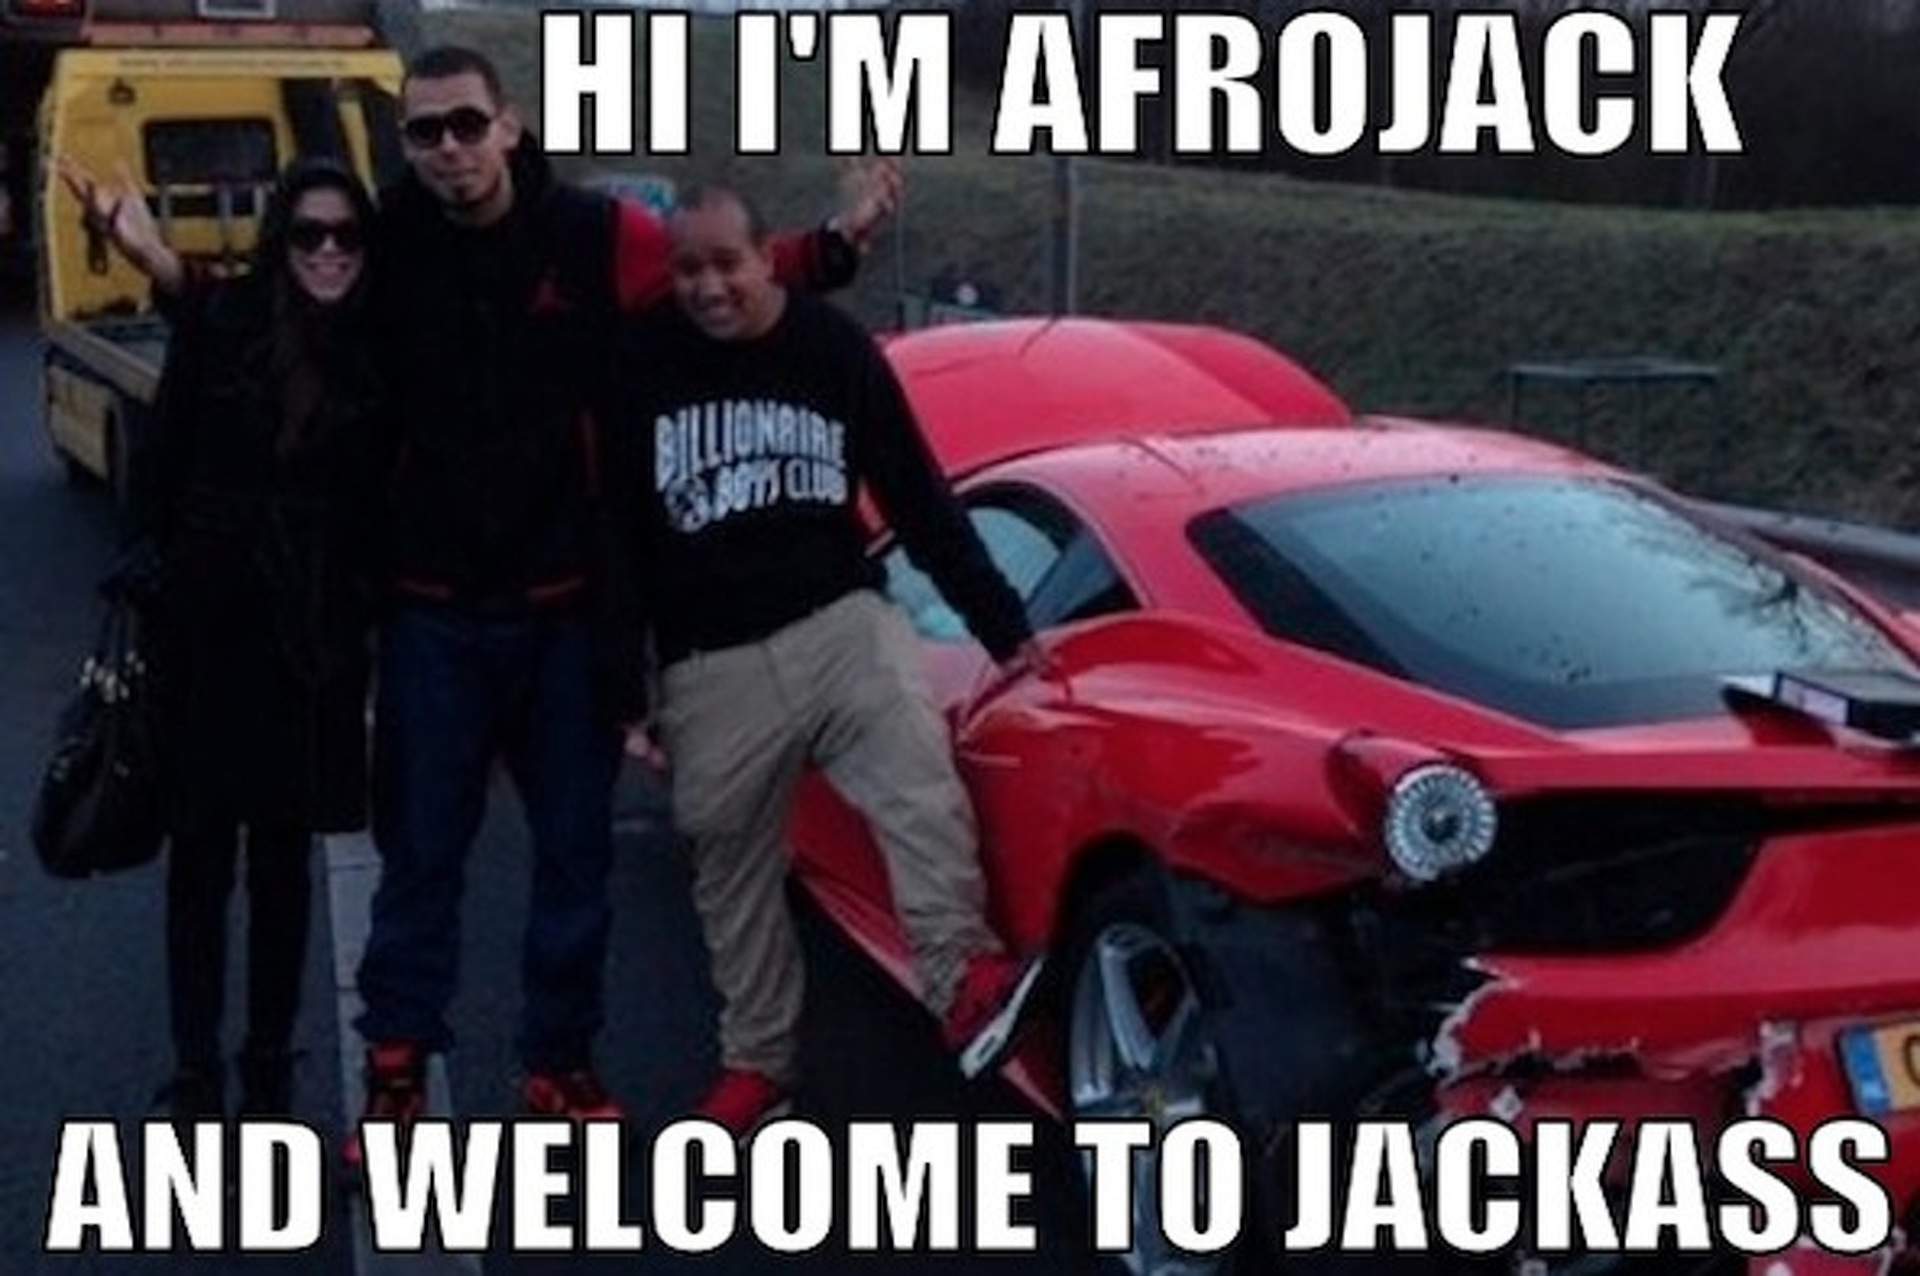 DJ Afrojack Wrecks His Ferrari 458 and Doesn't Give a Damn